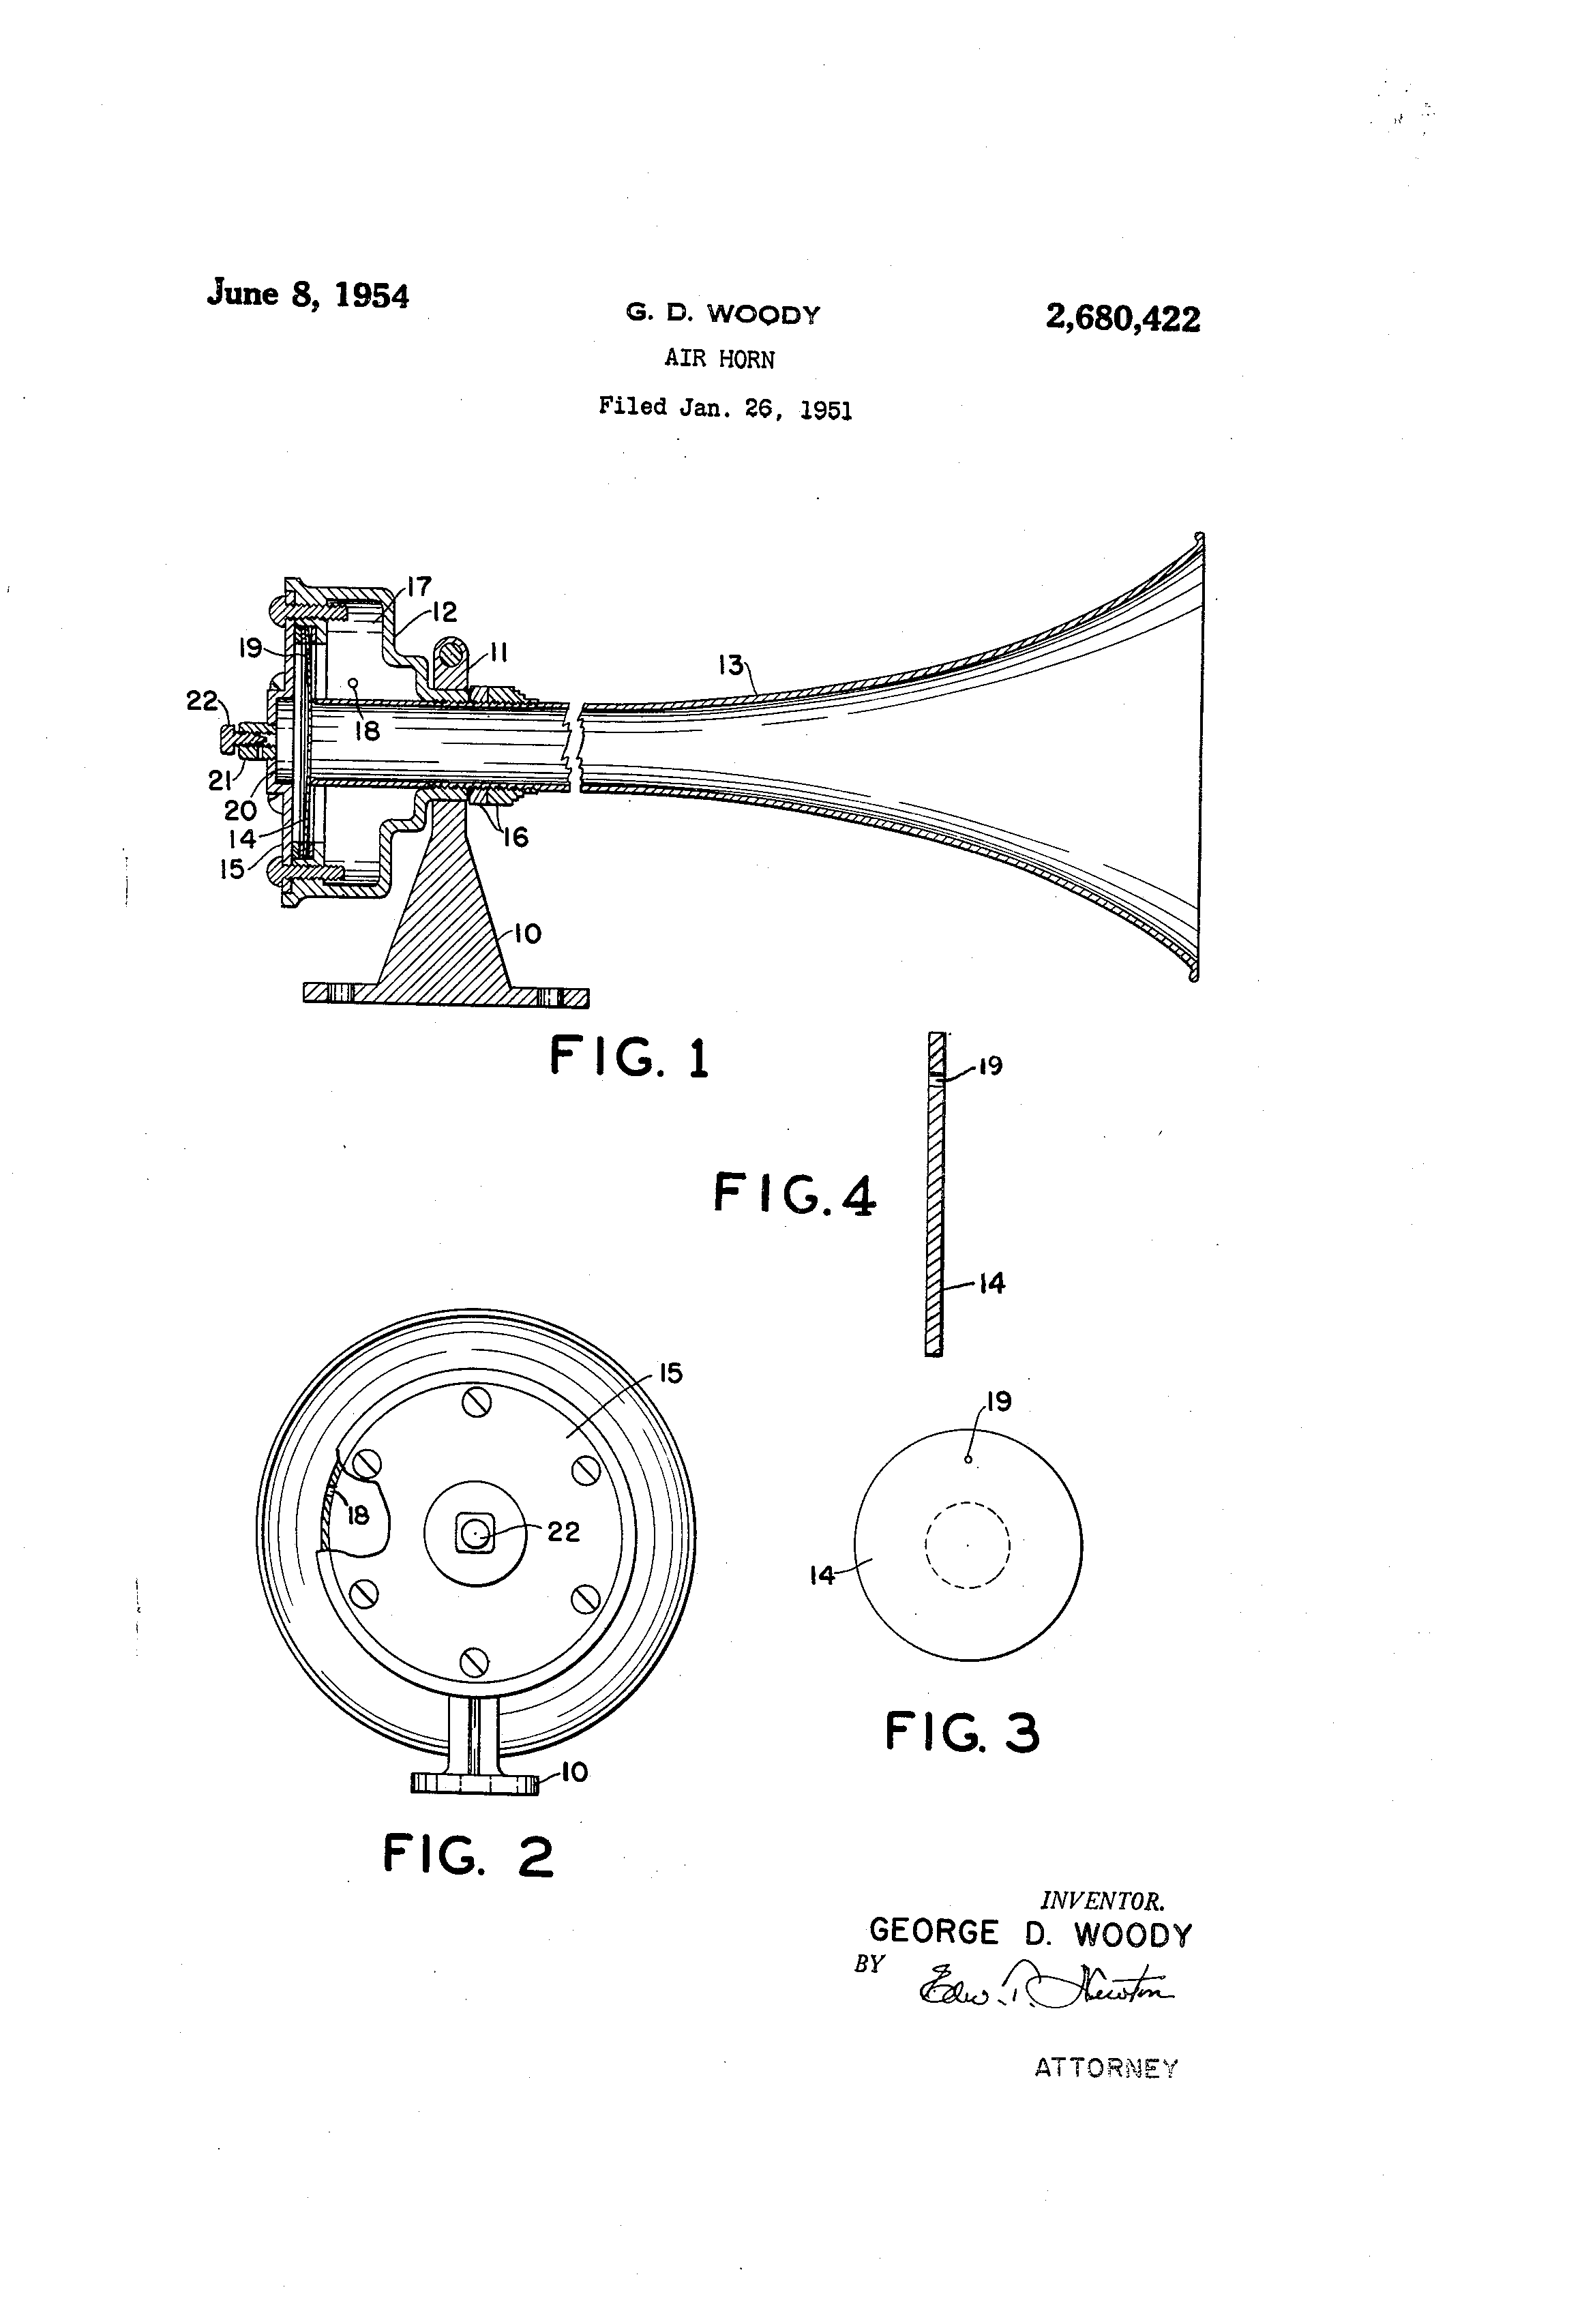 air horn diaphragm patent us2680422 - air horn - google patents ford air horn wiring diagram #5